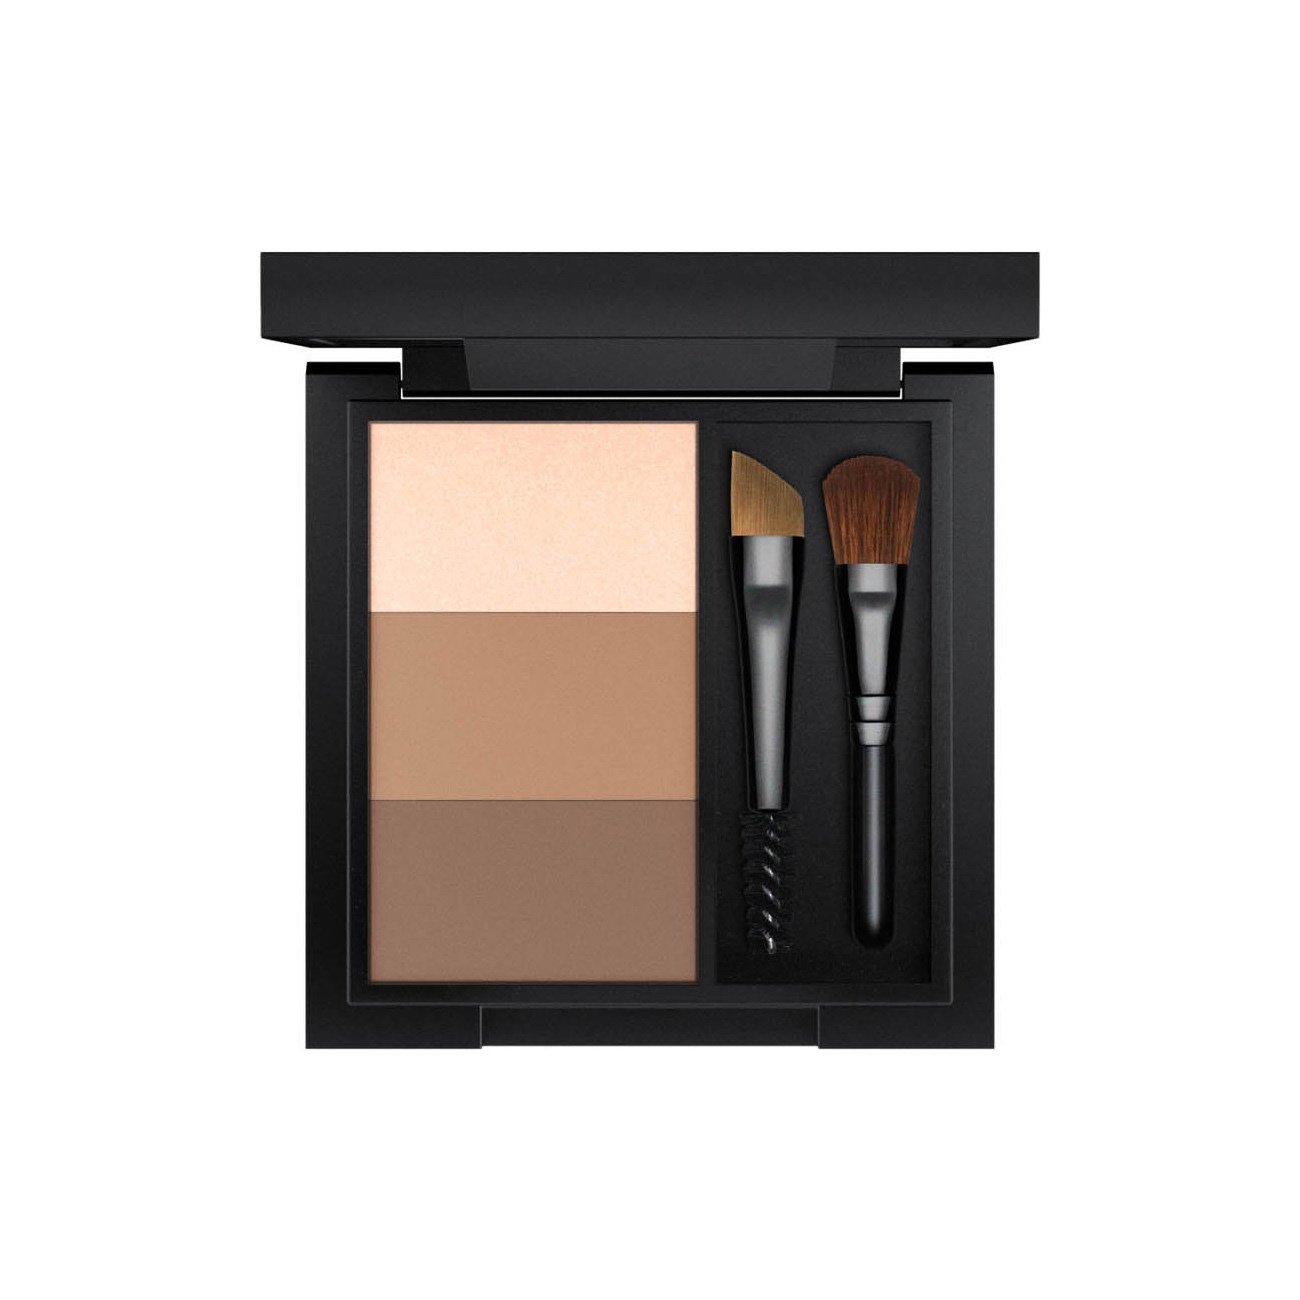 Mac Great Brows Great Brows 3.5 g TAUPE 825439